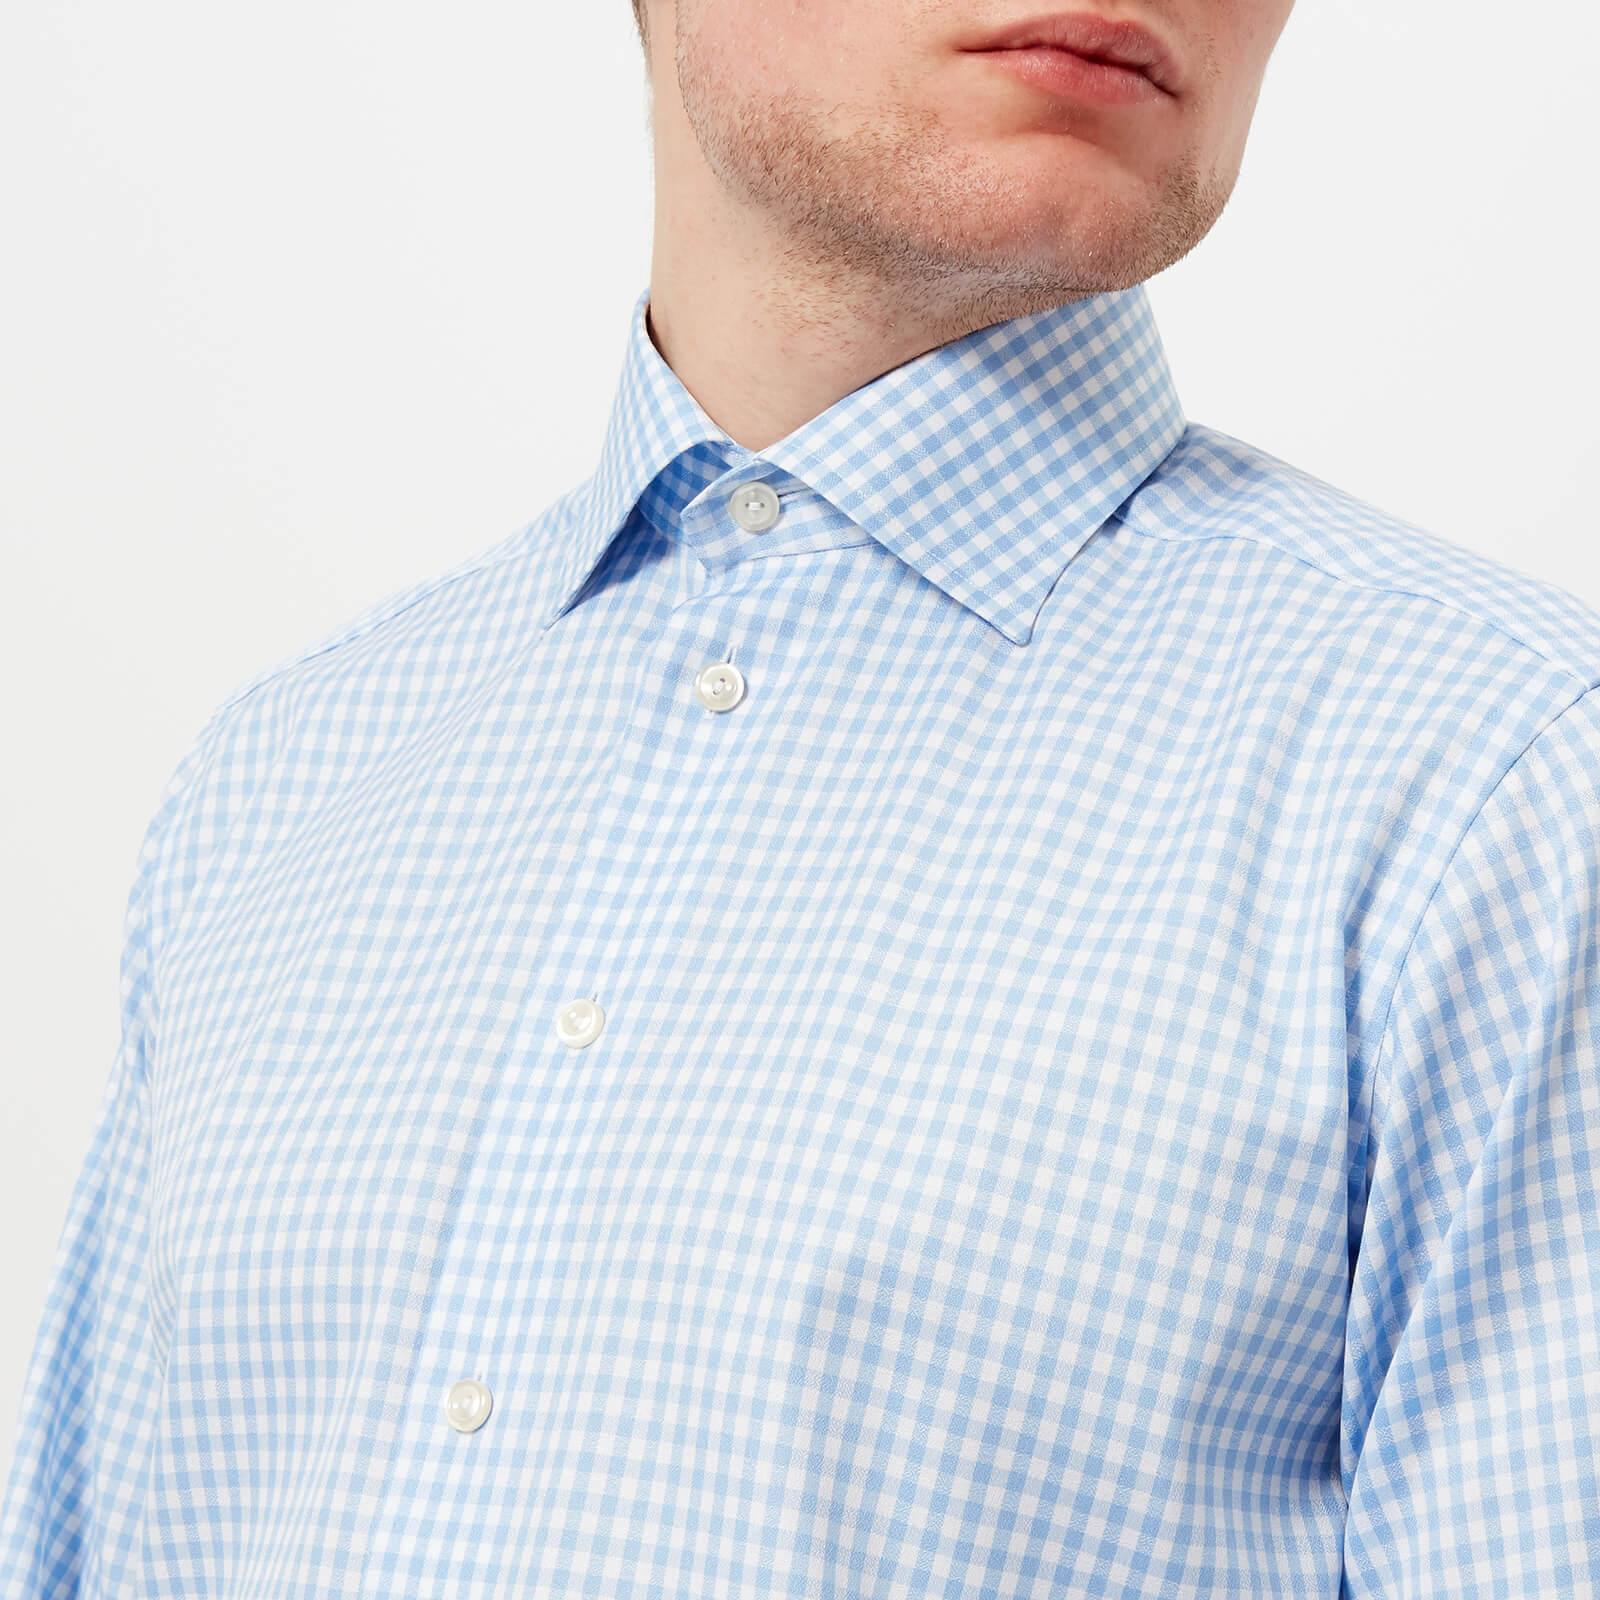 Eton of Sweden Cotton Contemporary Fit Extreme Cut Away Gingham Check Shirt in Light Blue (Blue) for Men